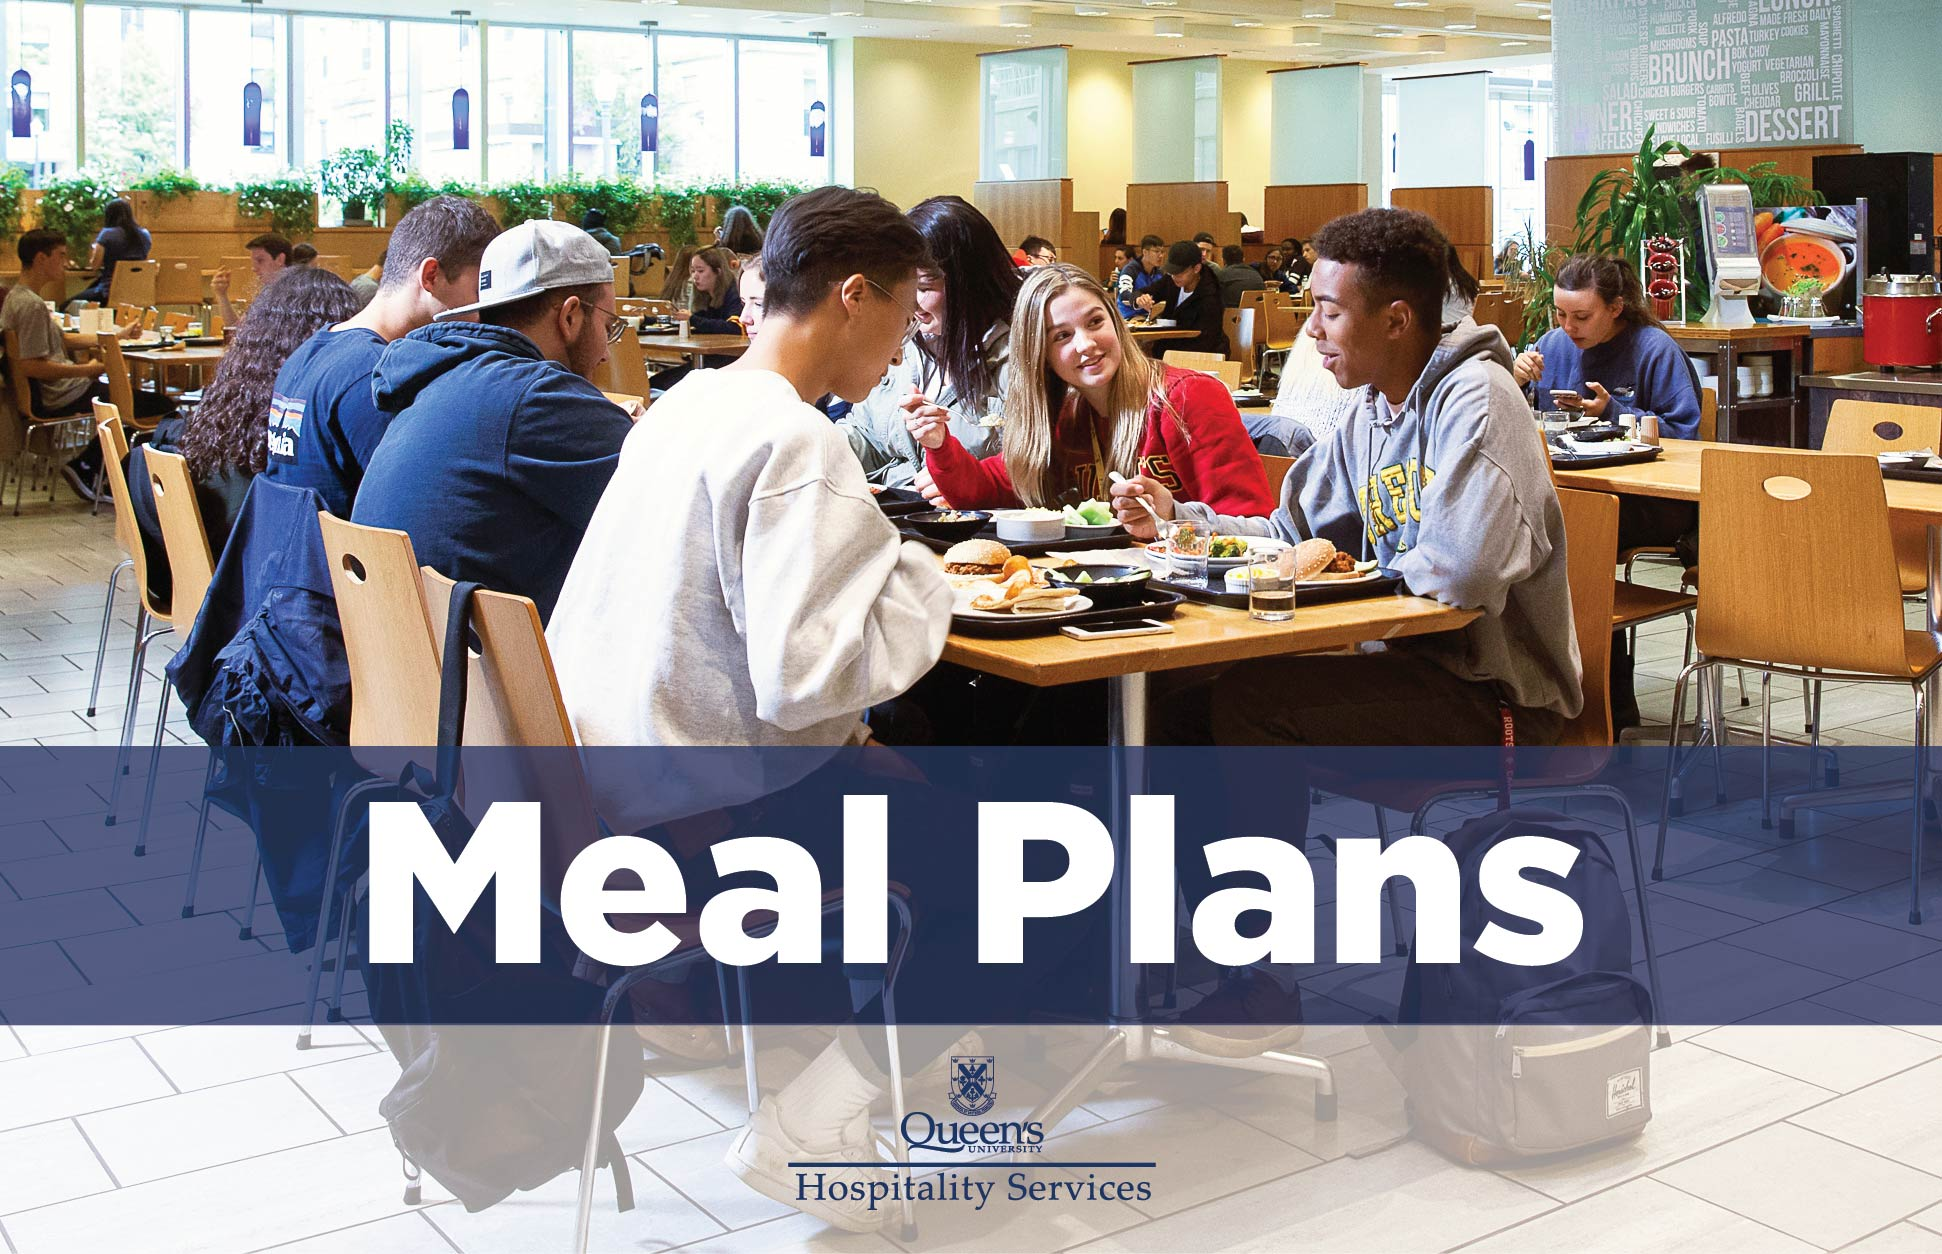 Students sitting in a residence dining hall. Text reads Meal Plans. Queen's University logo, Hospitality Services.